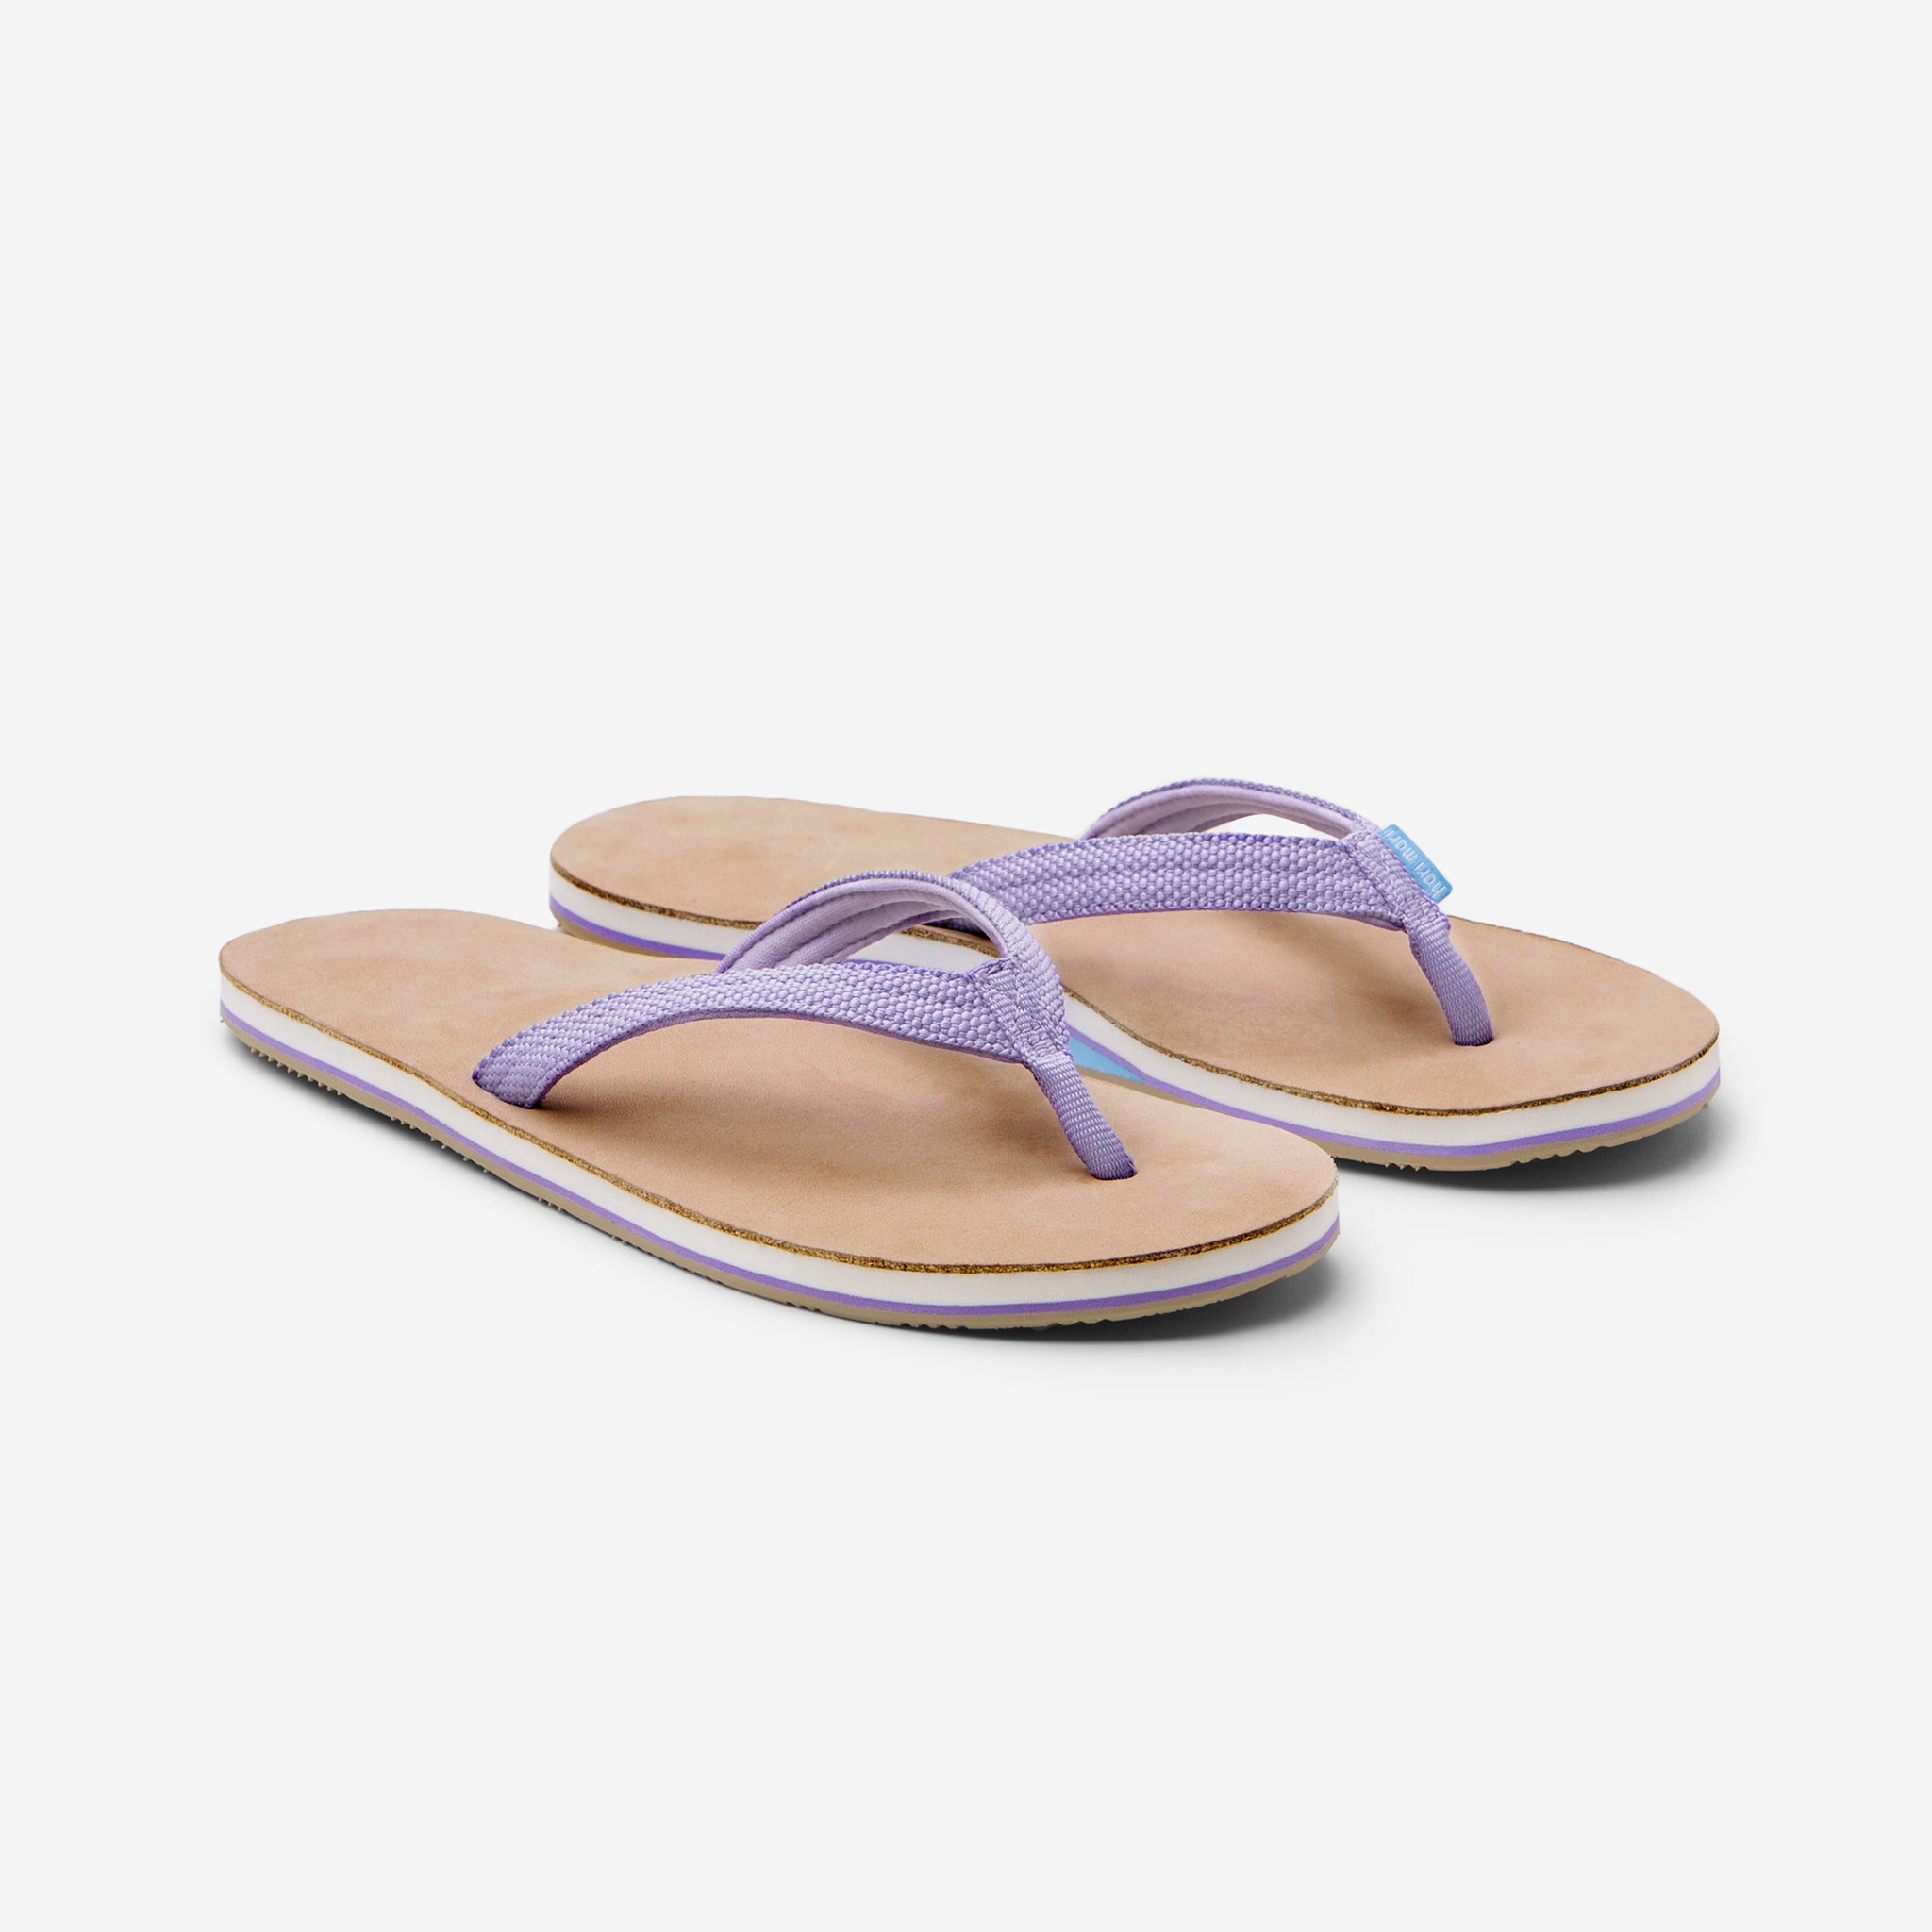 Scouts II - Women's - Violet/Sand  - 45 Degree View